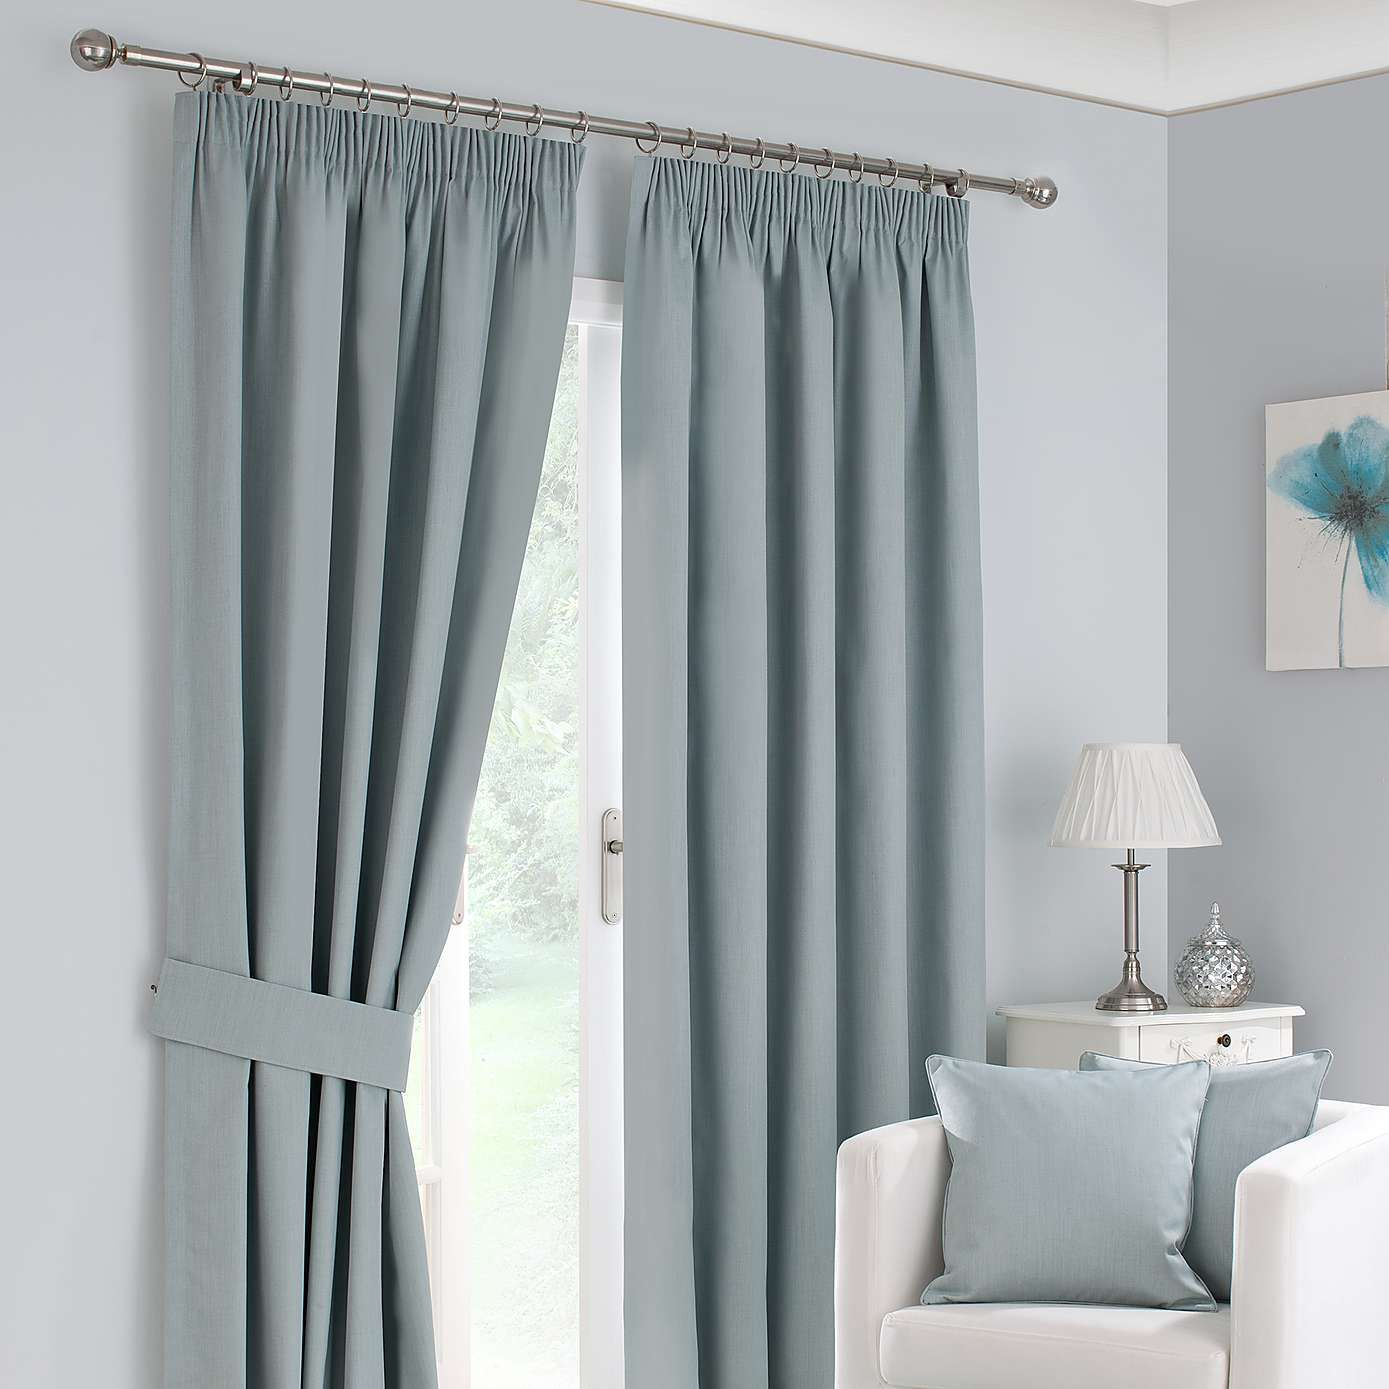 image curtains and livings ro beautify wall decoration your pain grey living accessories panels blue with rod ideas treatment room white two metal of using single including appealing for curtain patterned ivory window simple